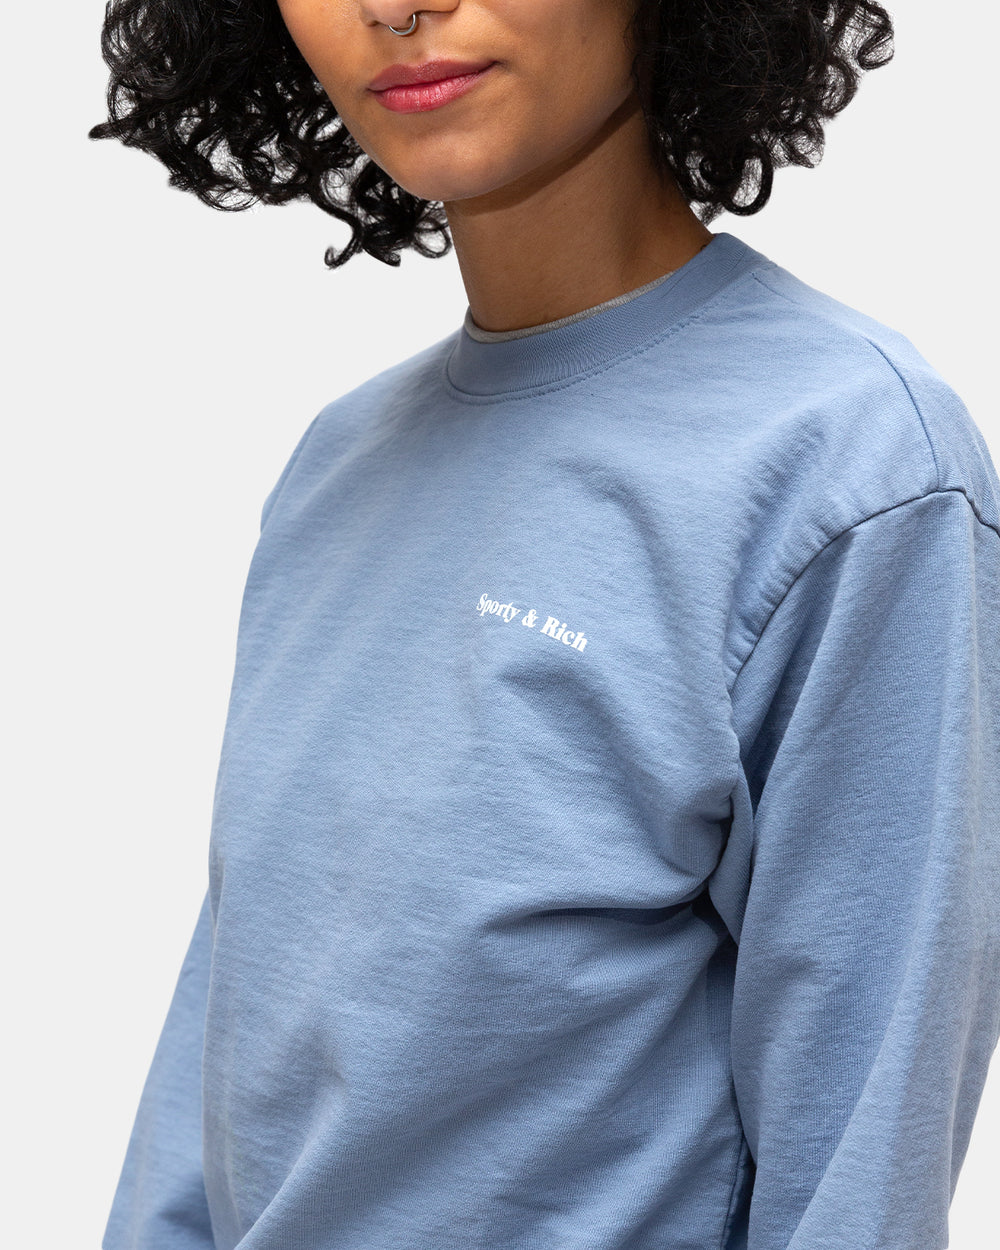 Sporty & Rich - Women's Fun Logo French Terry Sweatshirt (Powder Blue)